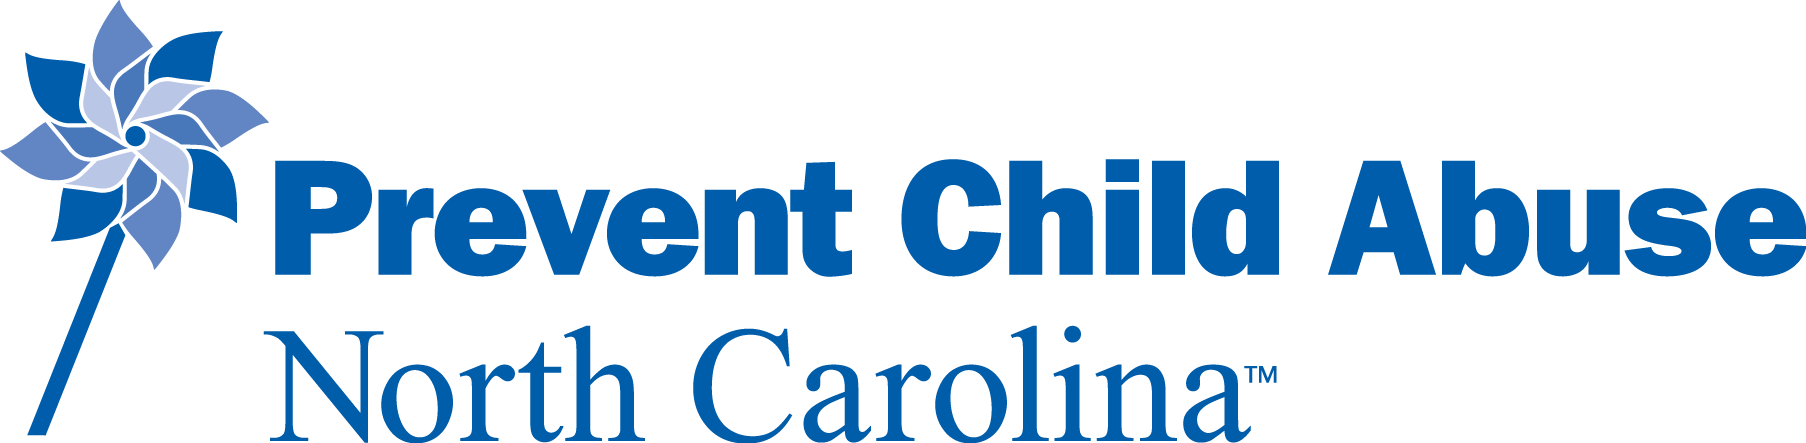 Sponsor Prevent Child Abuse North Carolina